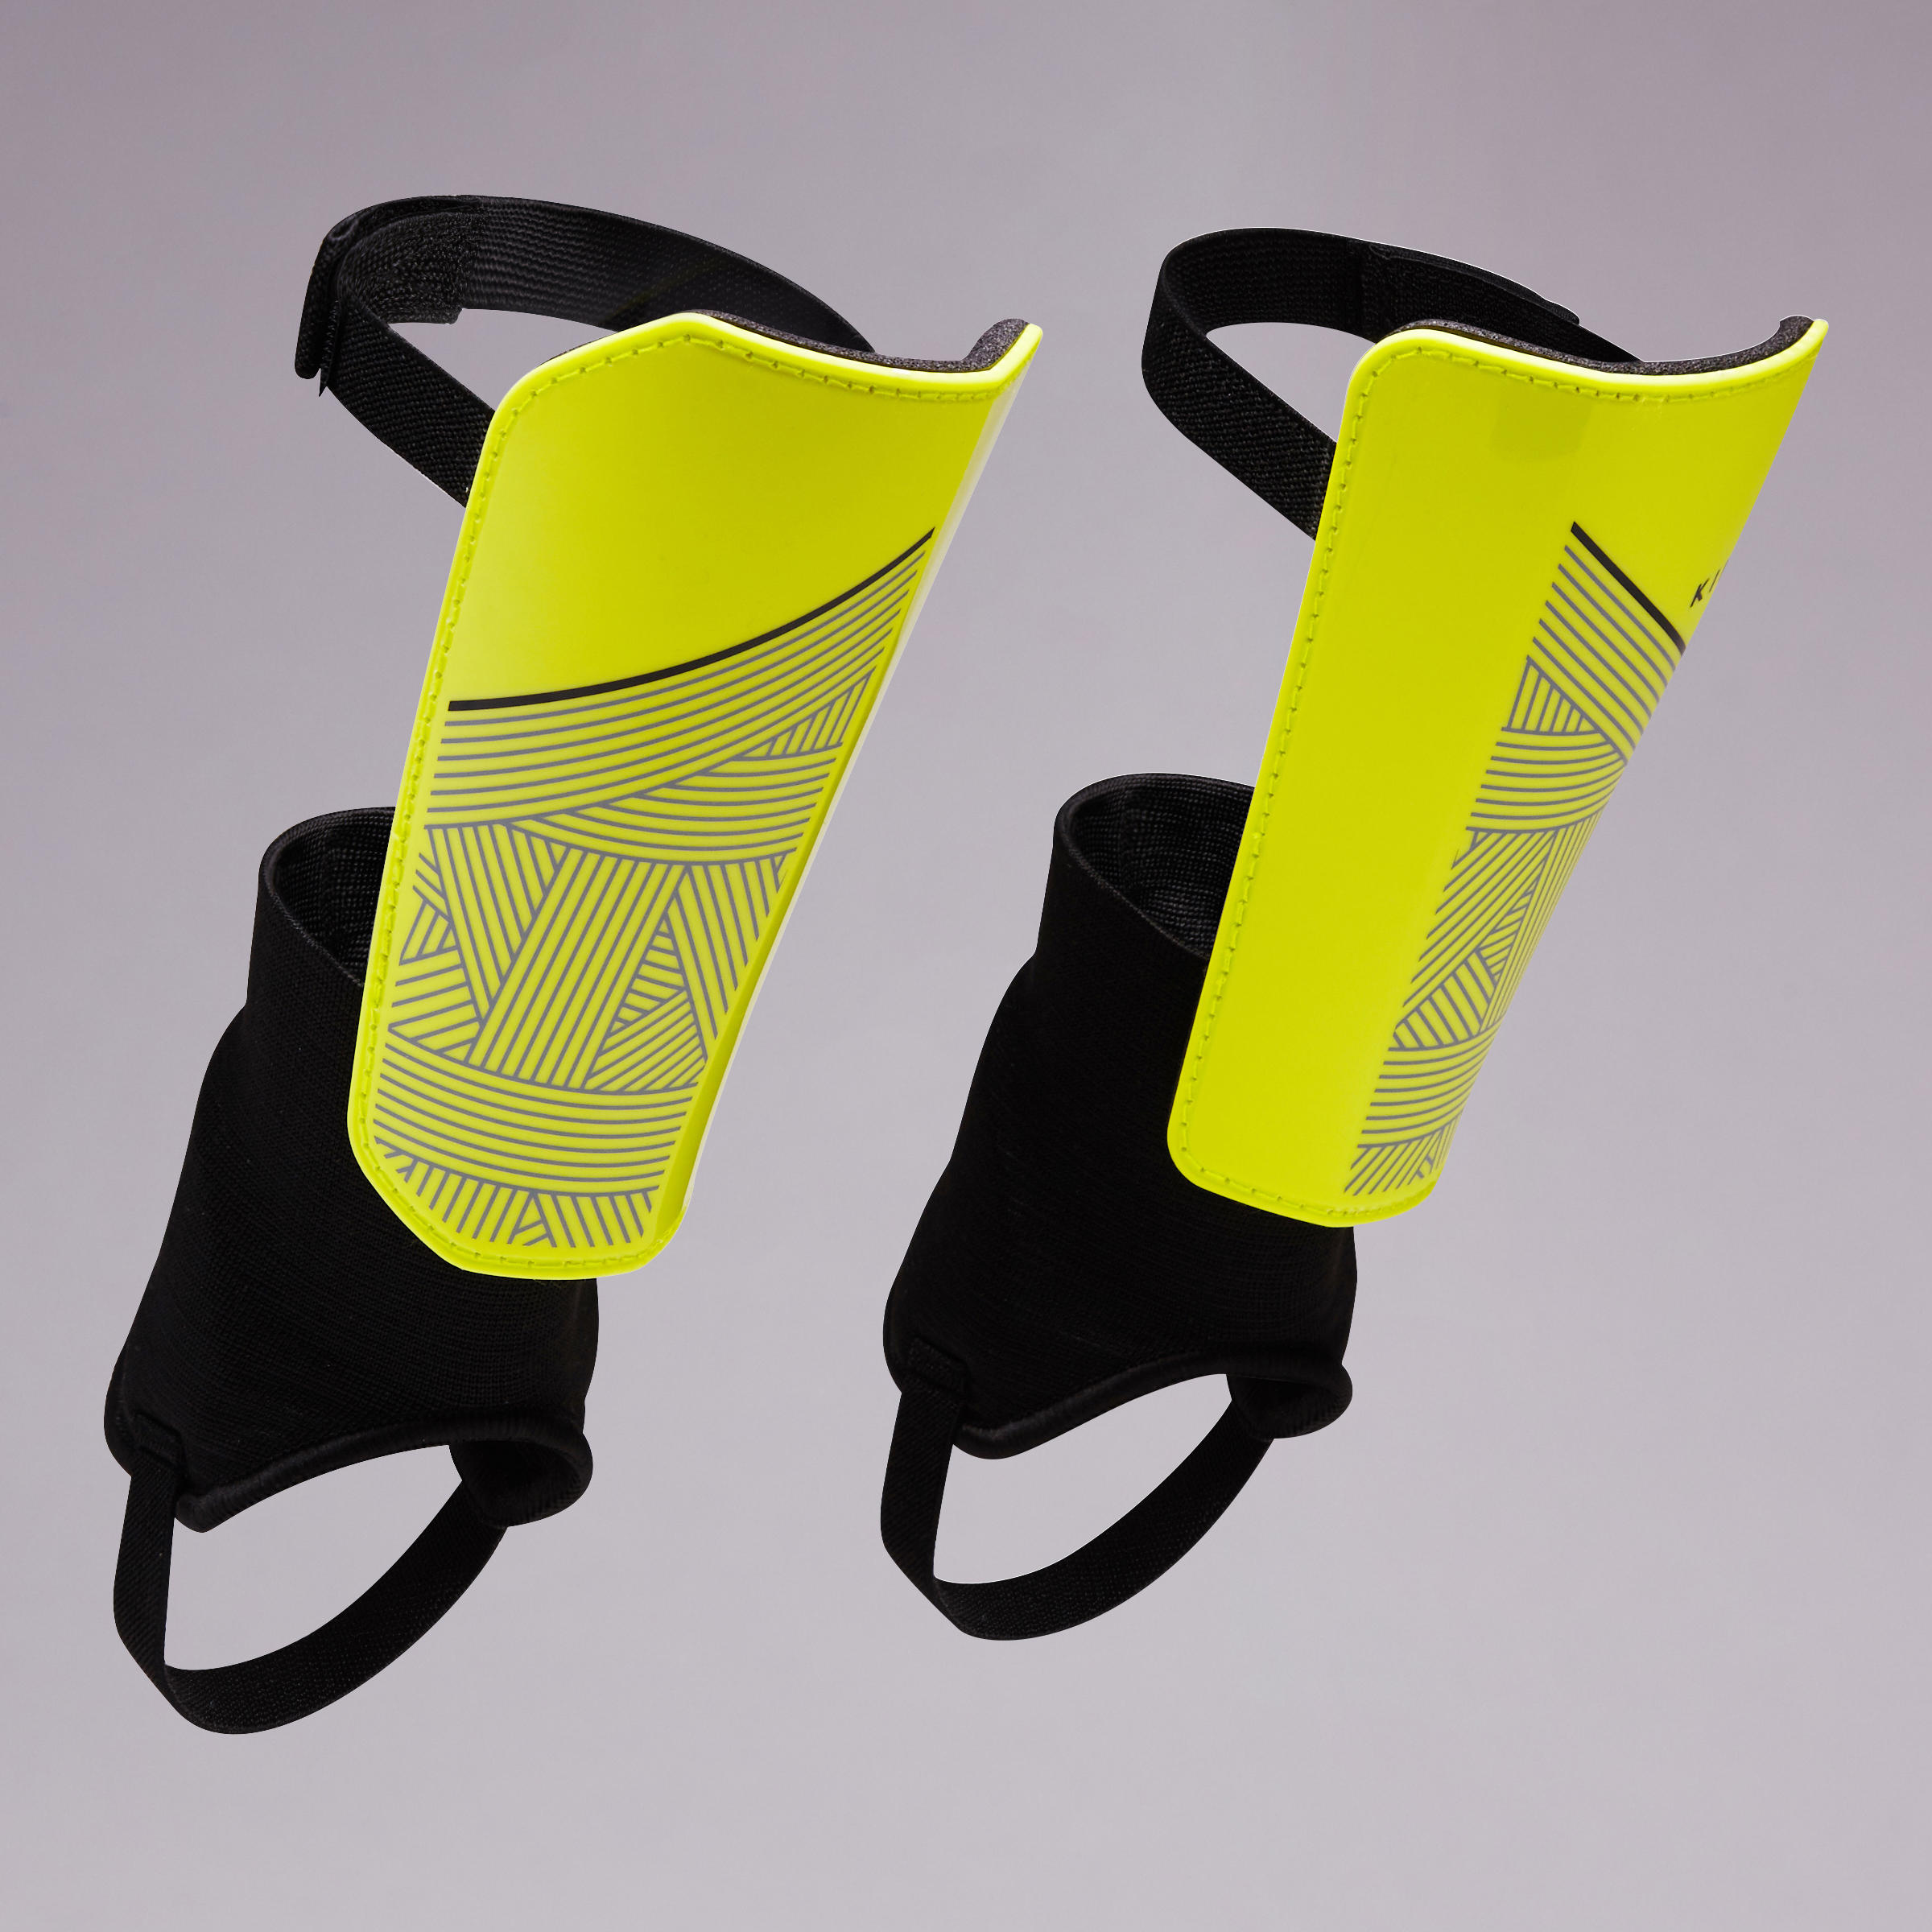 F140 Adult Football Shin Guards with Detachable Ankle Support - Yellow/Black